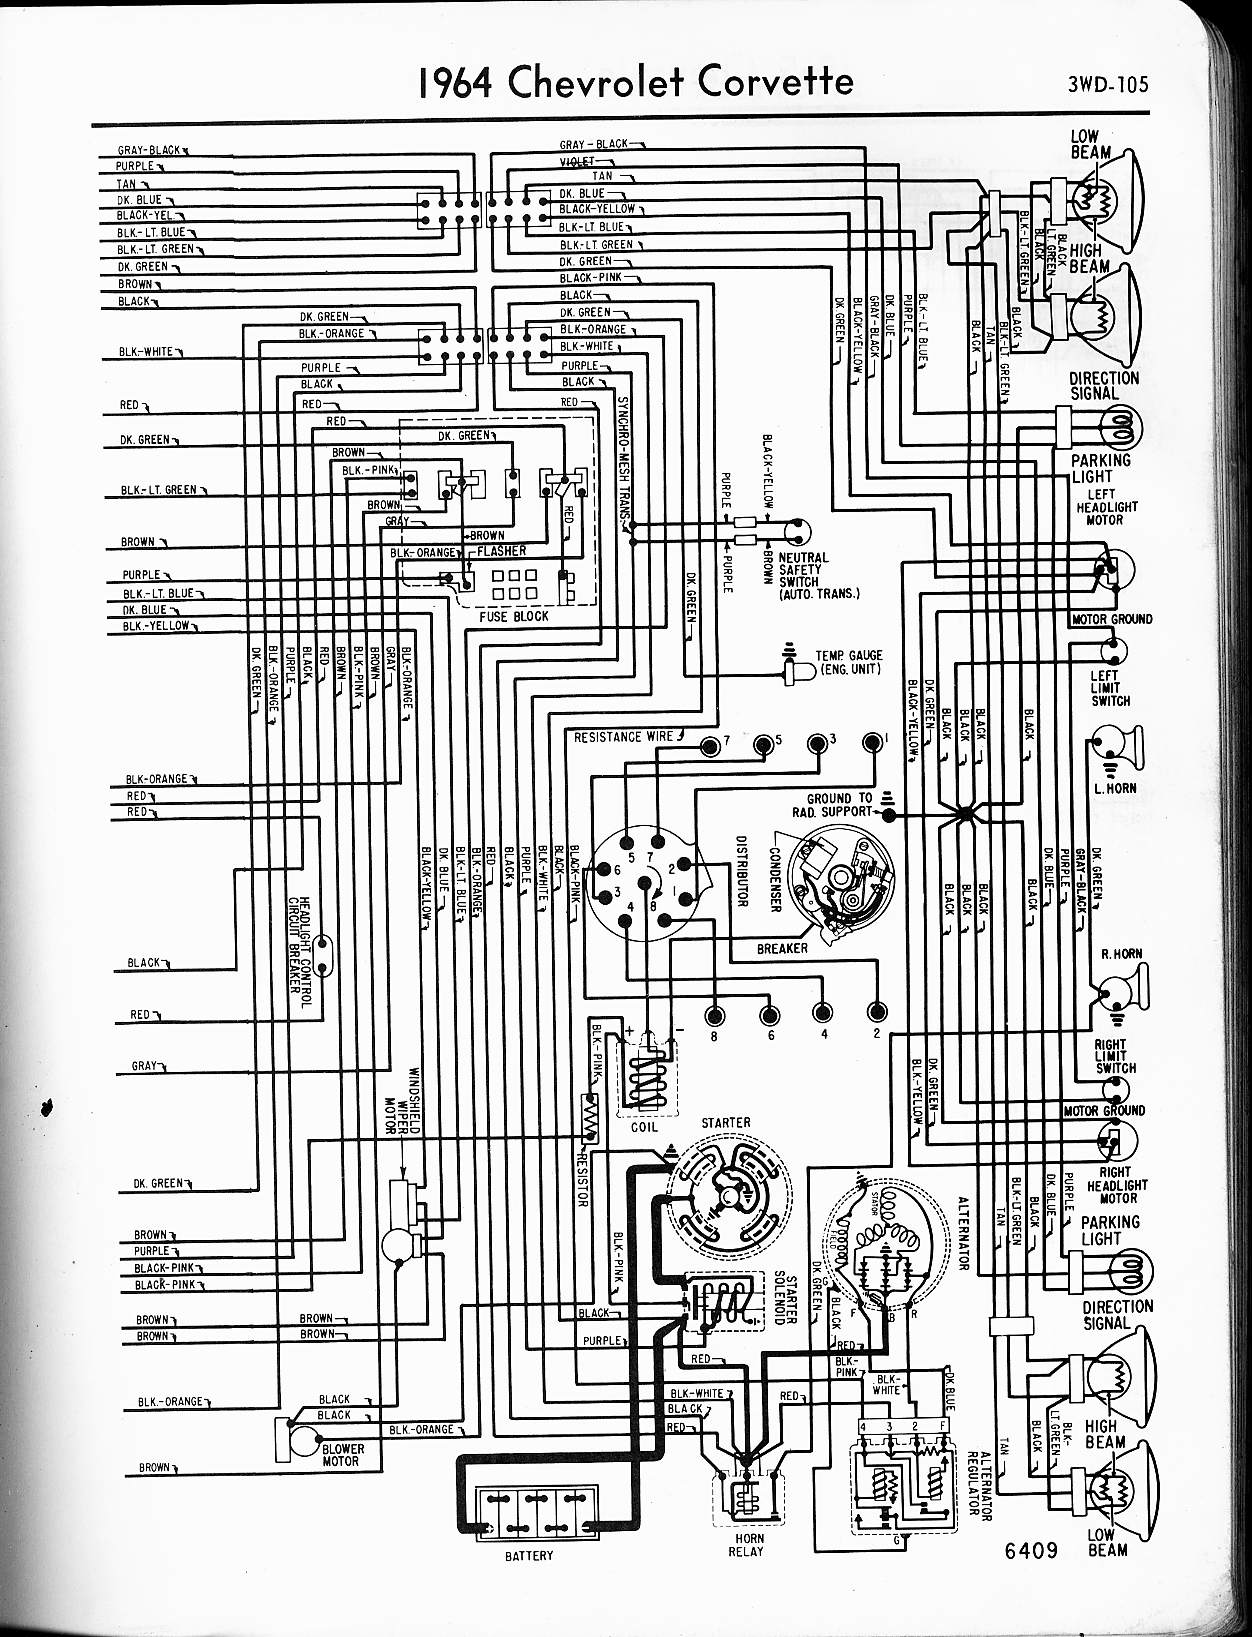 gm generator wiring schematic wiring diagramswrg 5531] gm generator wiring schematicgm alternator wiring diagram 1988 1964 corvette right